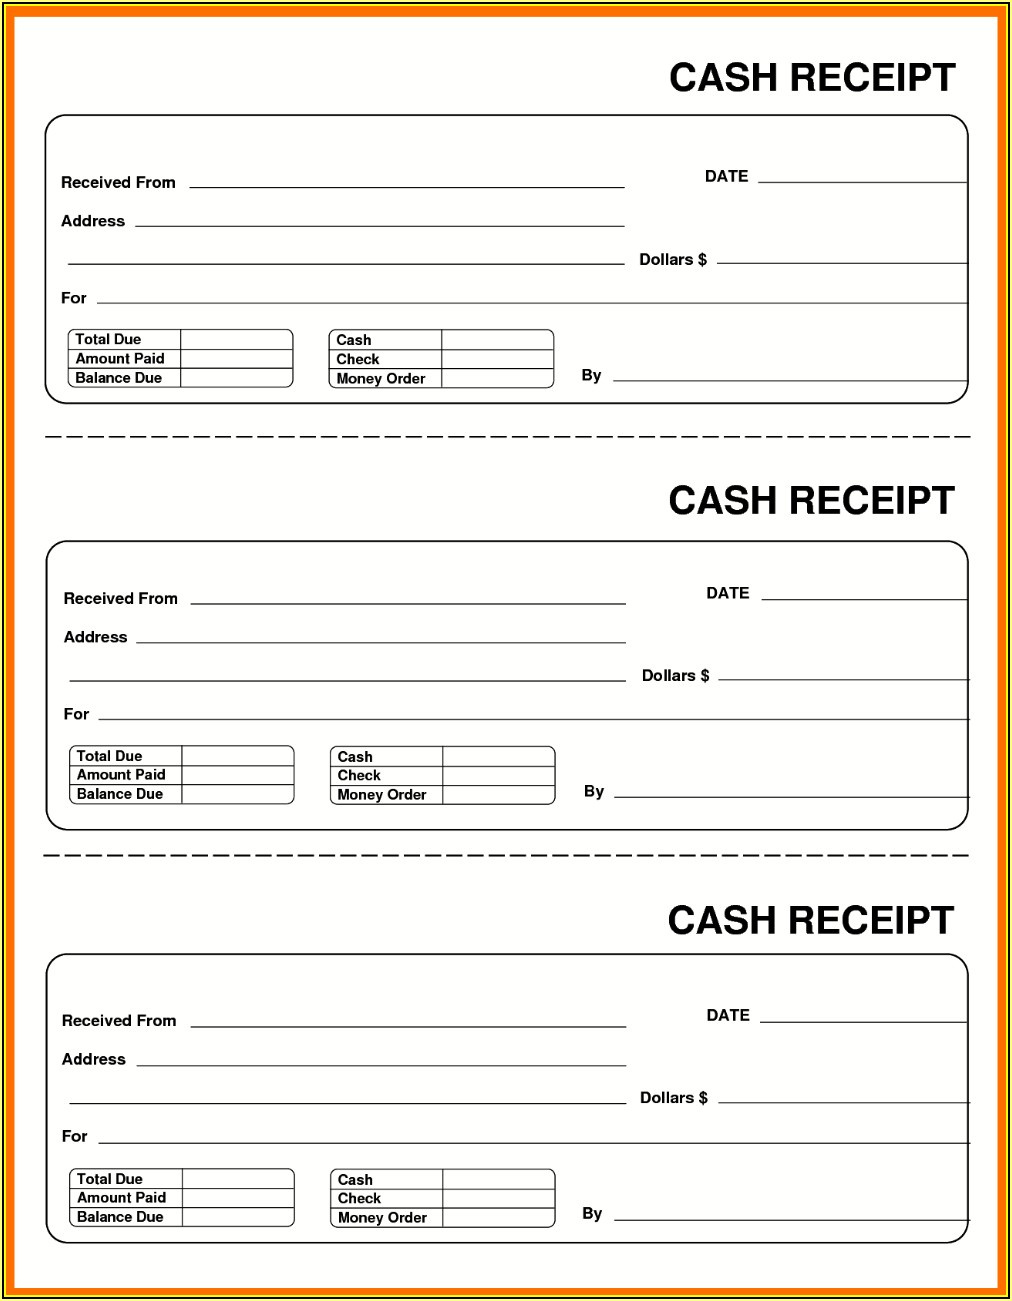 Free Blank Cash Receipt Template